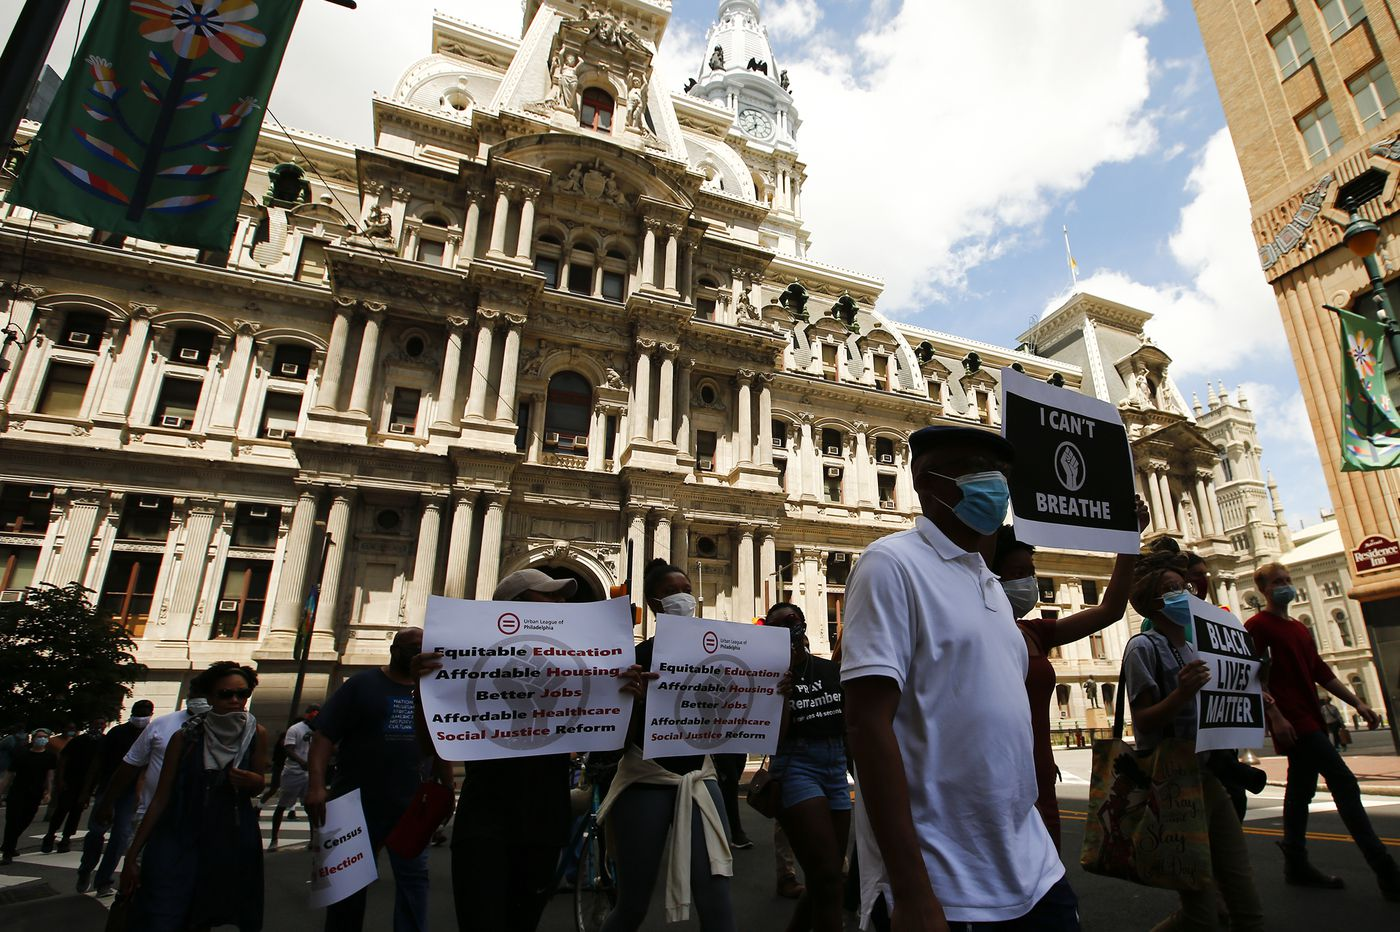 Philly City Council approves budget with coronavirus cuts, tax hikes, flat-funded Police Department